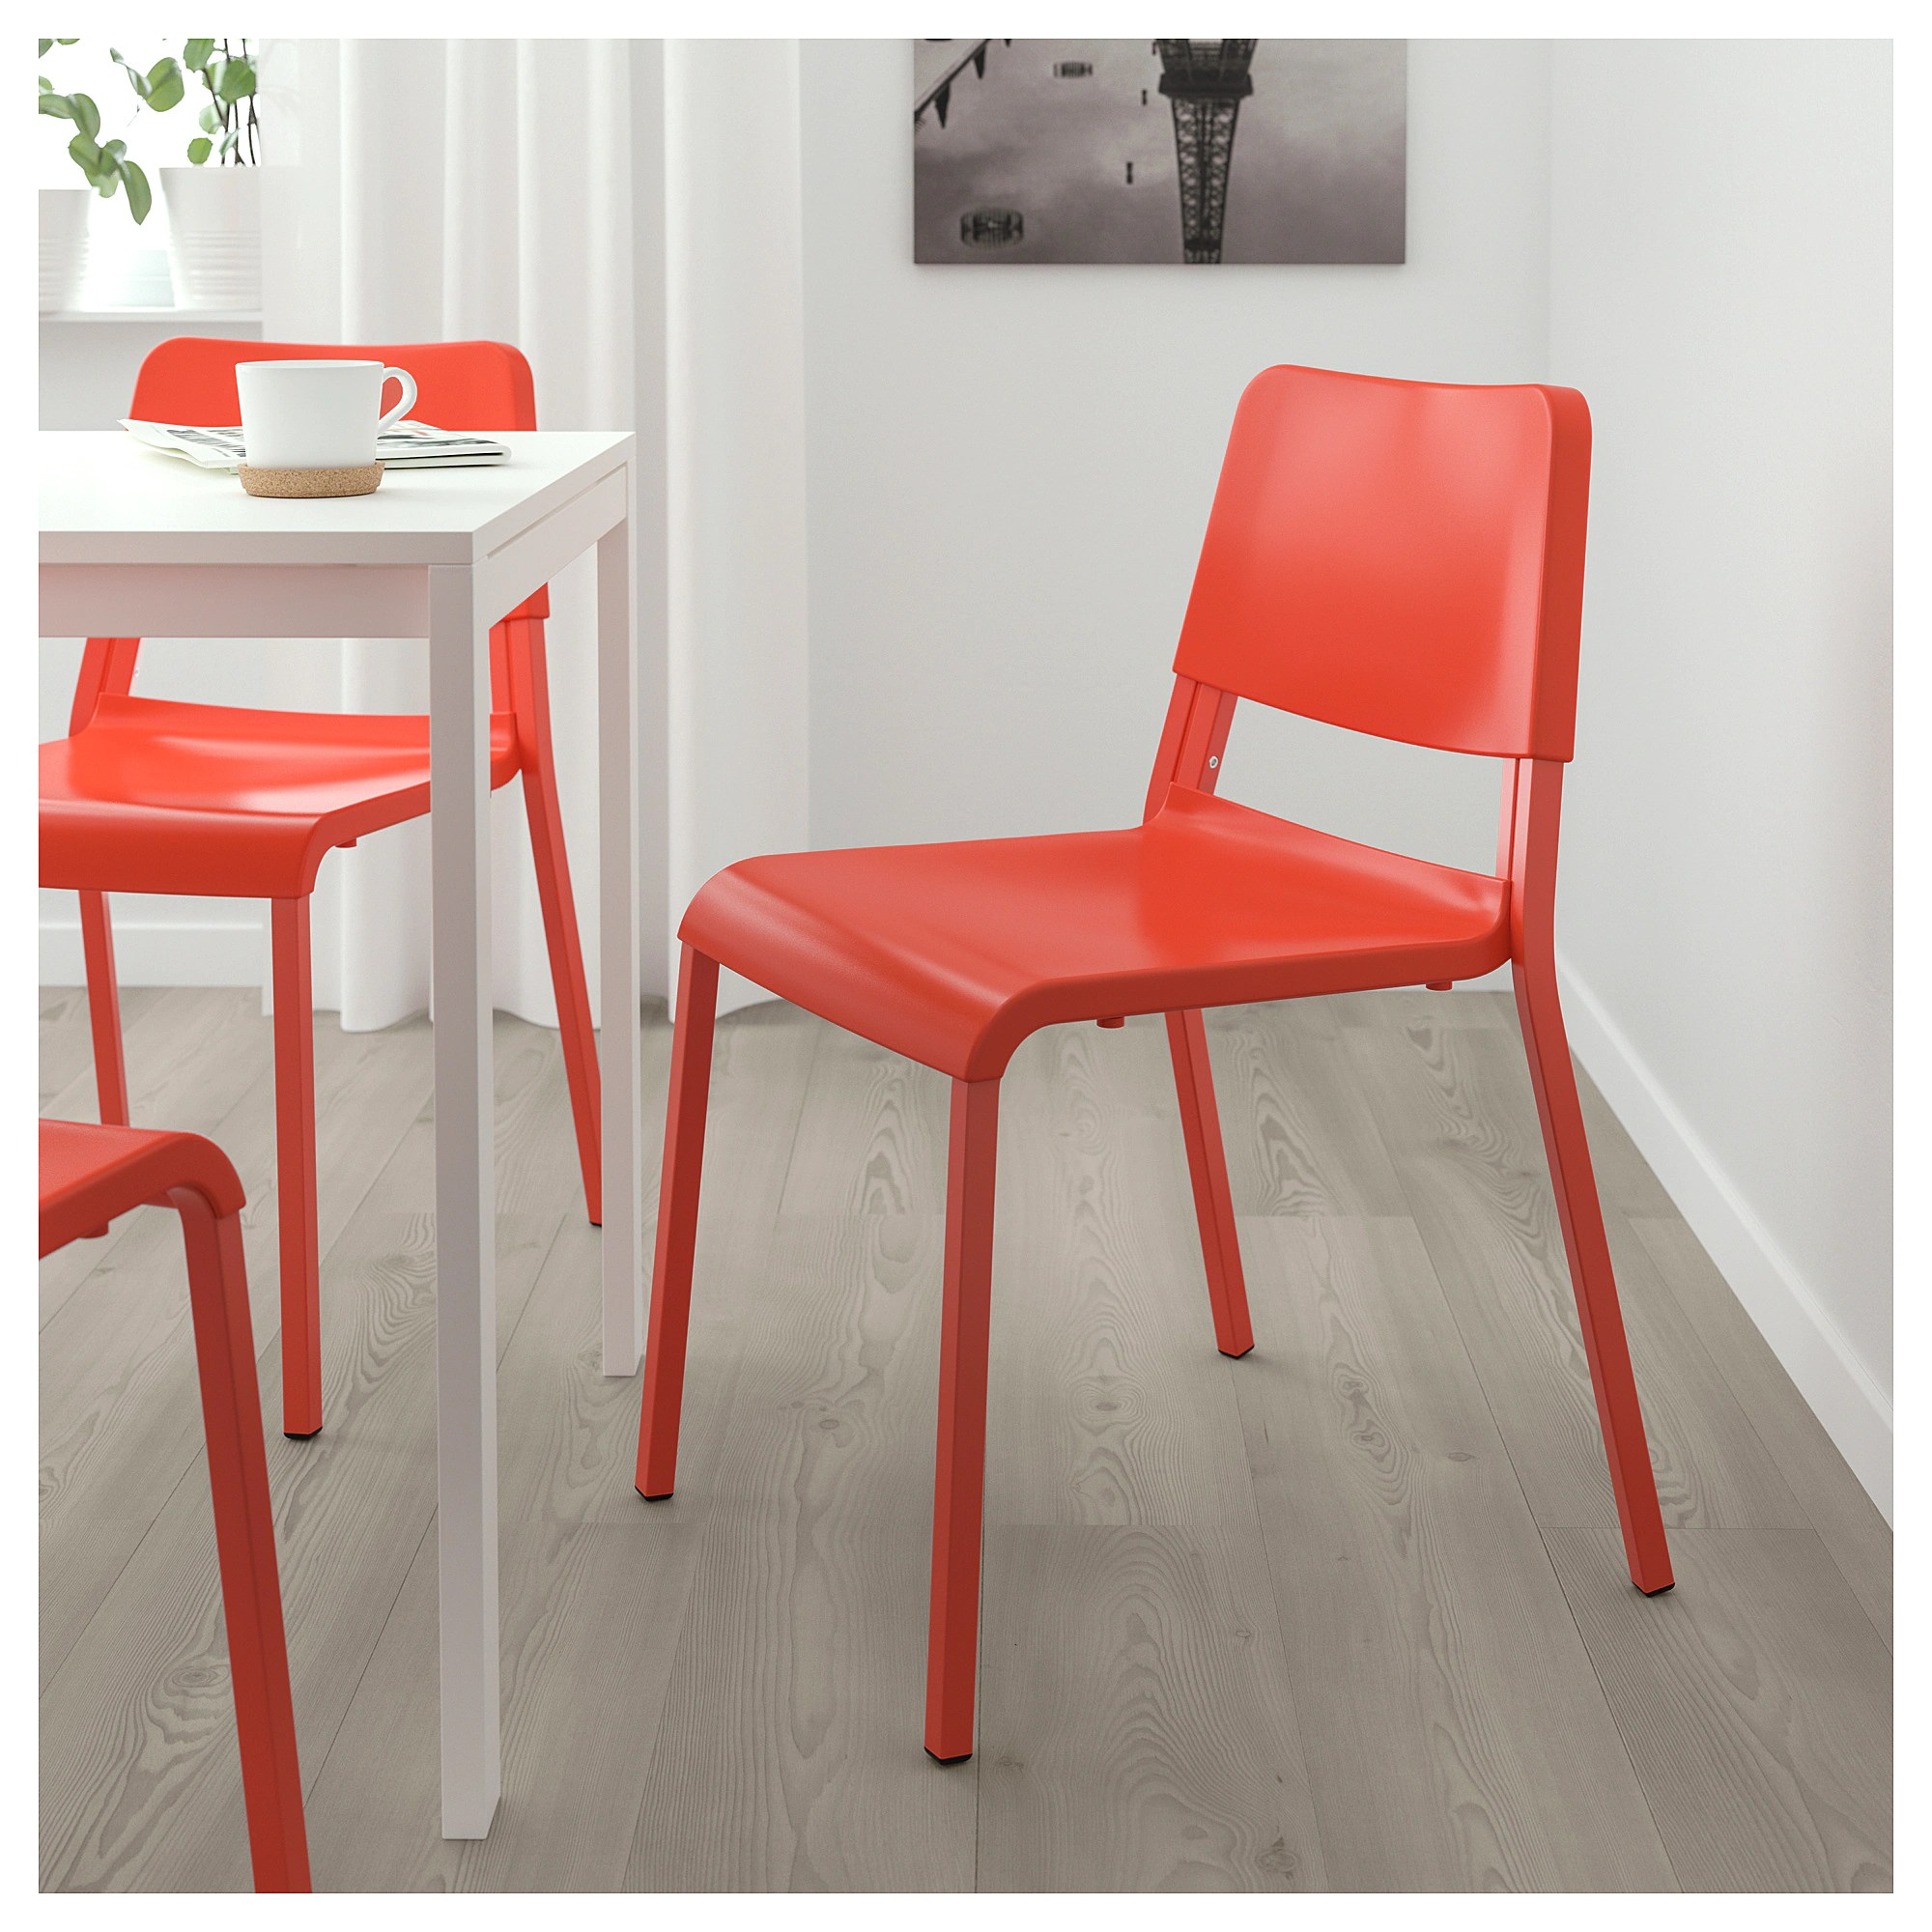 Sedia Junior Ikea Teodores Chair Bright Orange